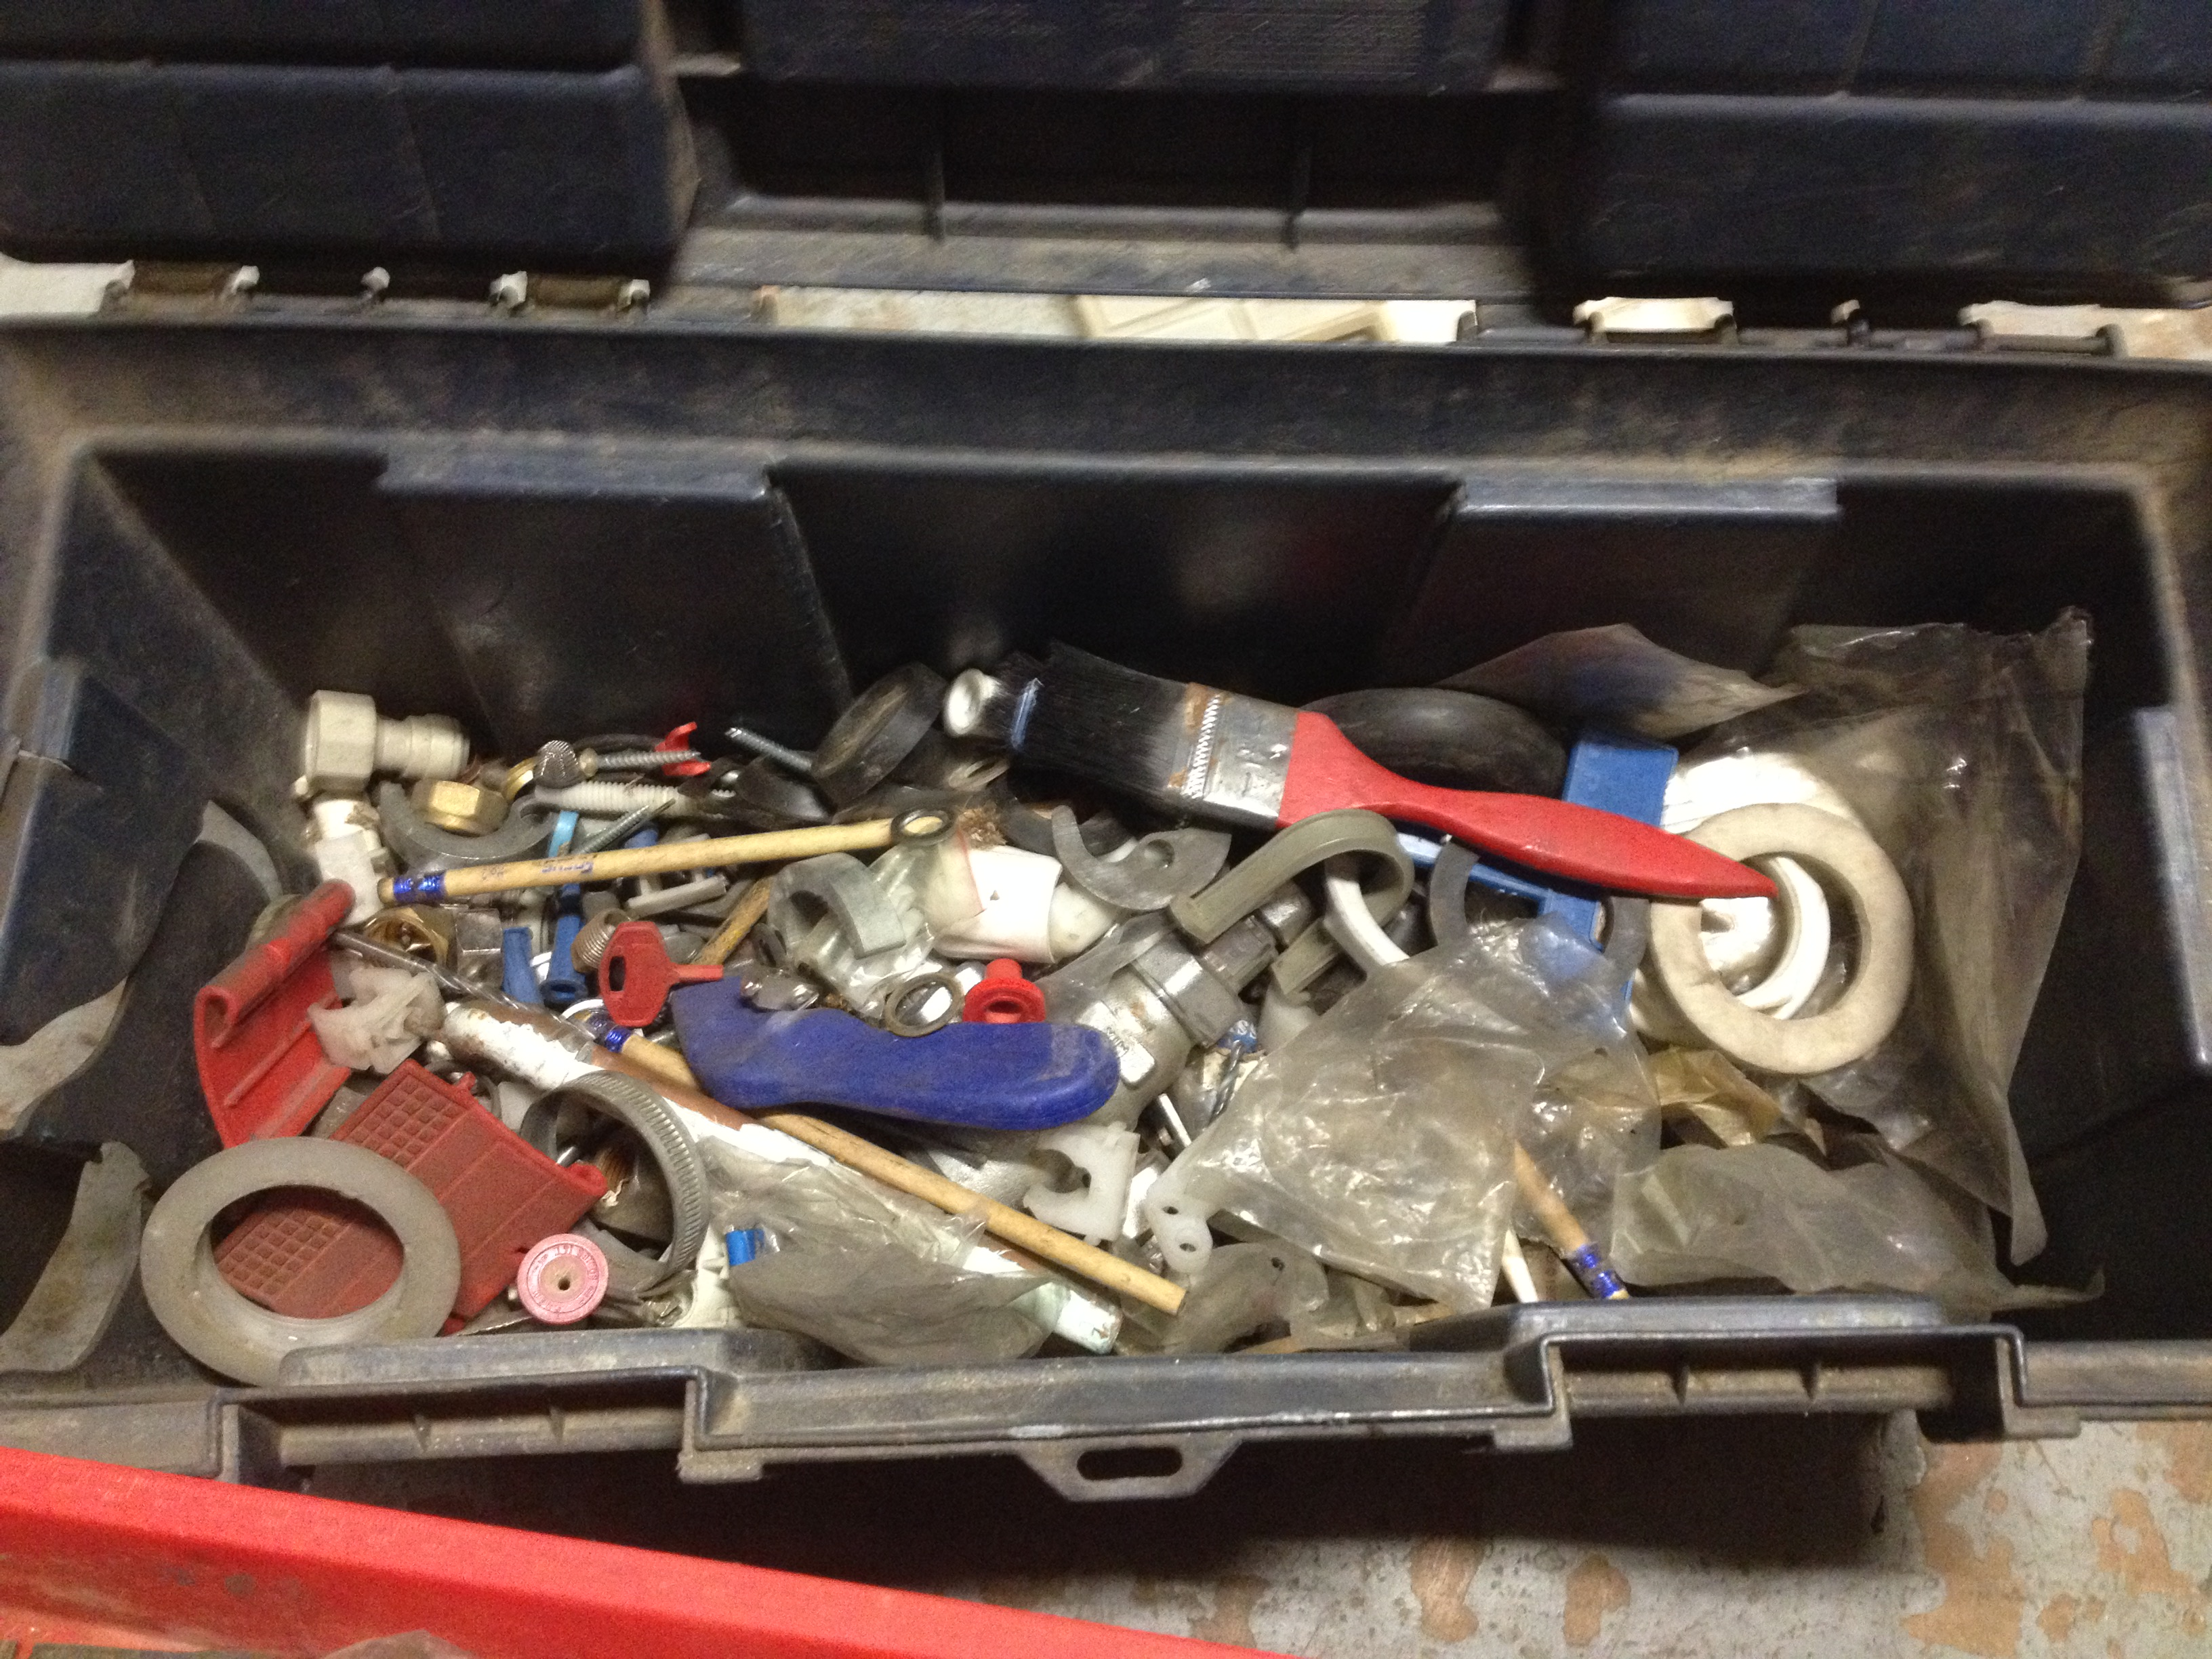 1 X Tool Box with Various tools inc Screwdrivers & Drill Bits - SEE PICTURES FOR FULL CONTENTS - Image 3 of 3